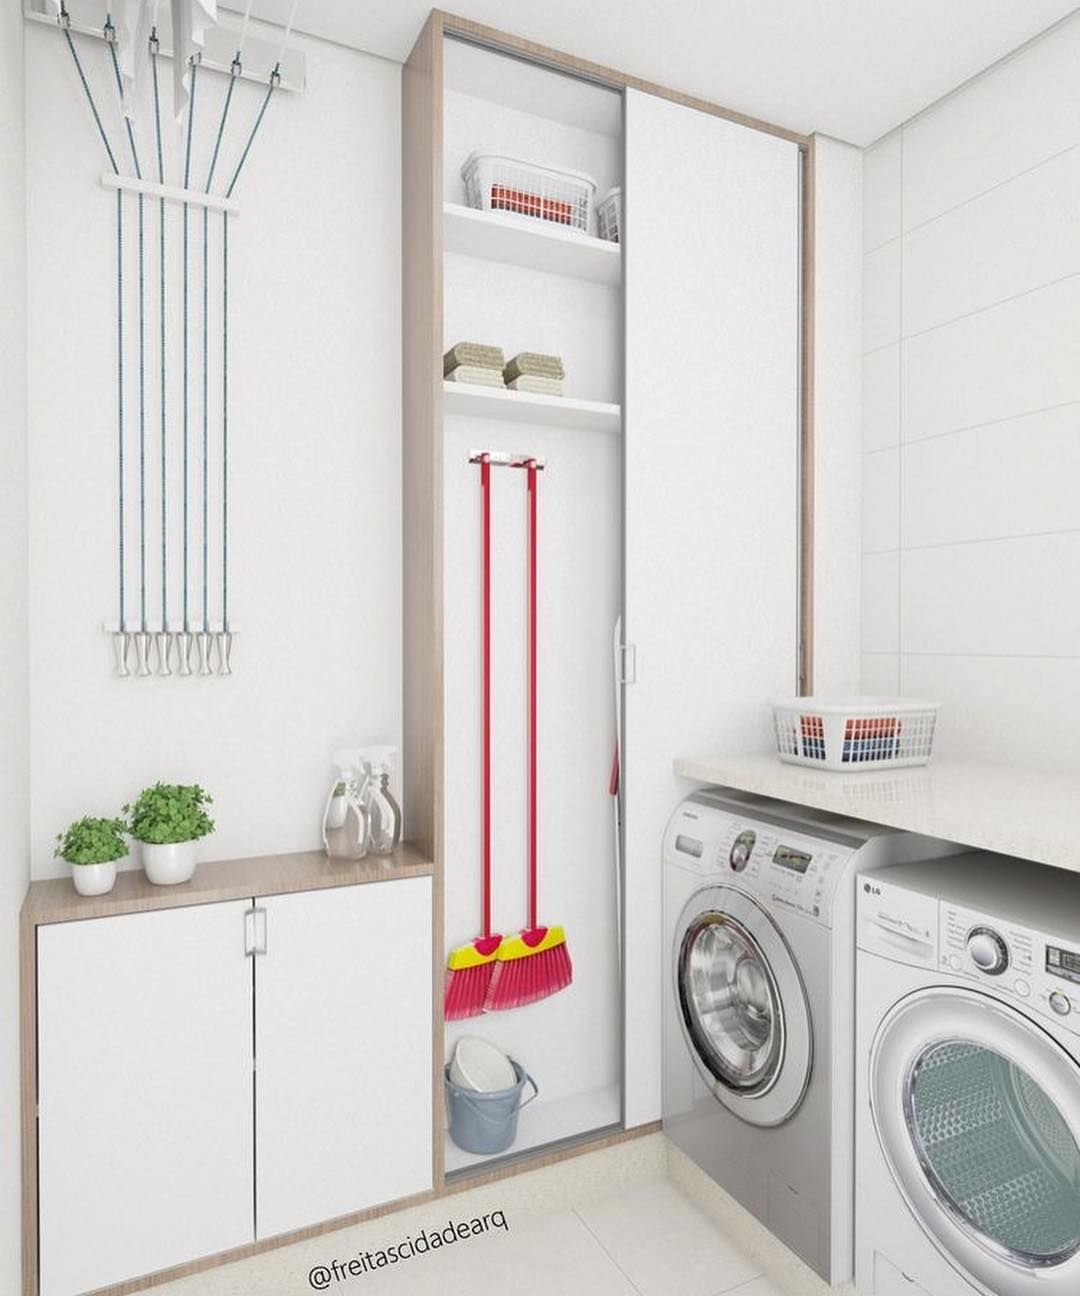 20 Brilliant Laundry Room Ideas For Small Spaces Practical